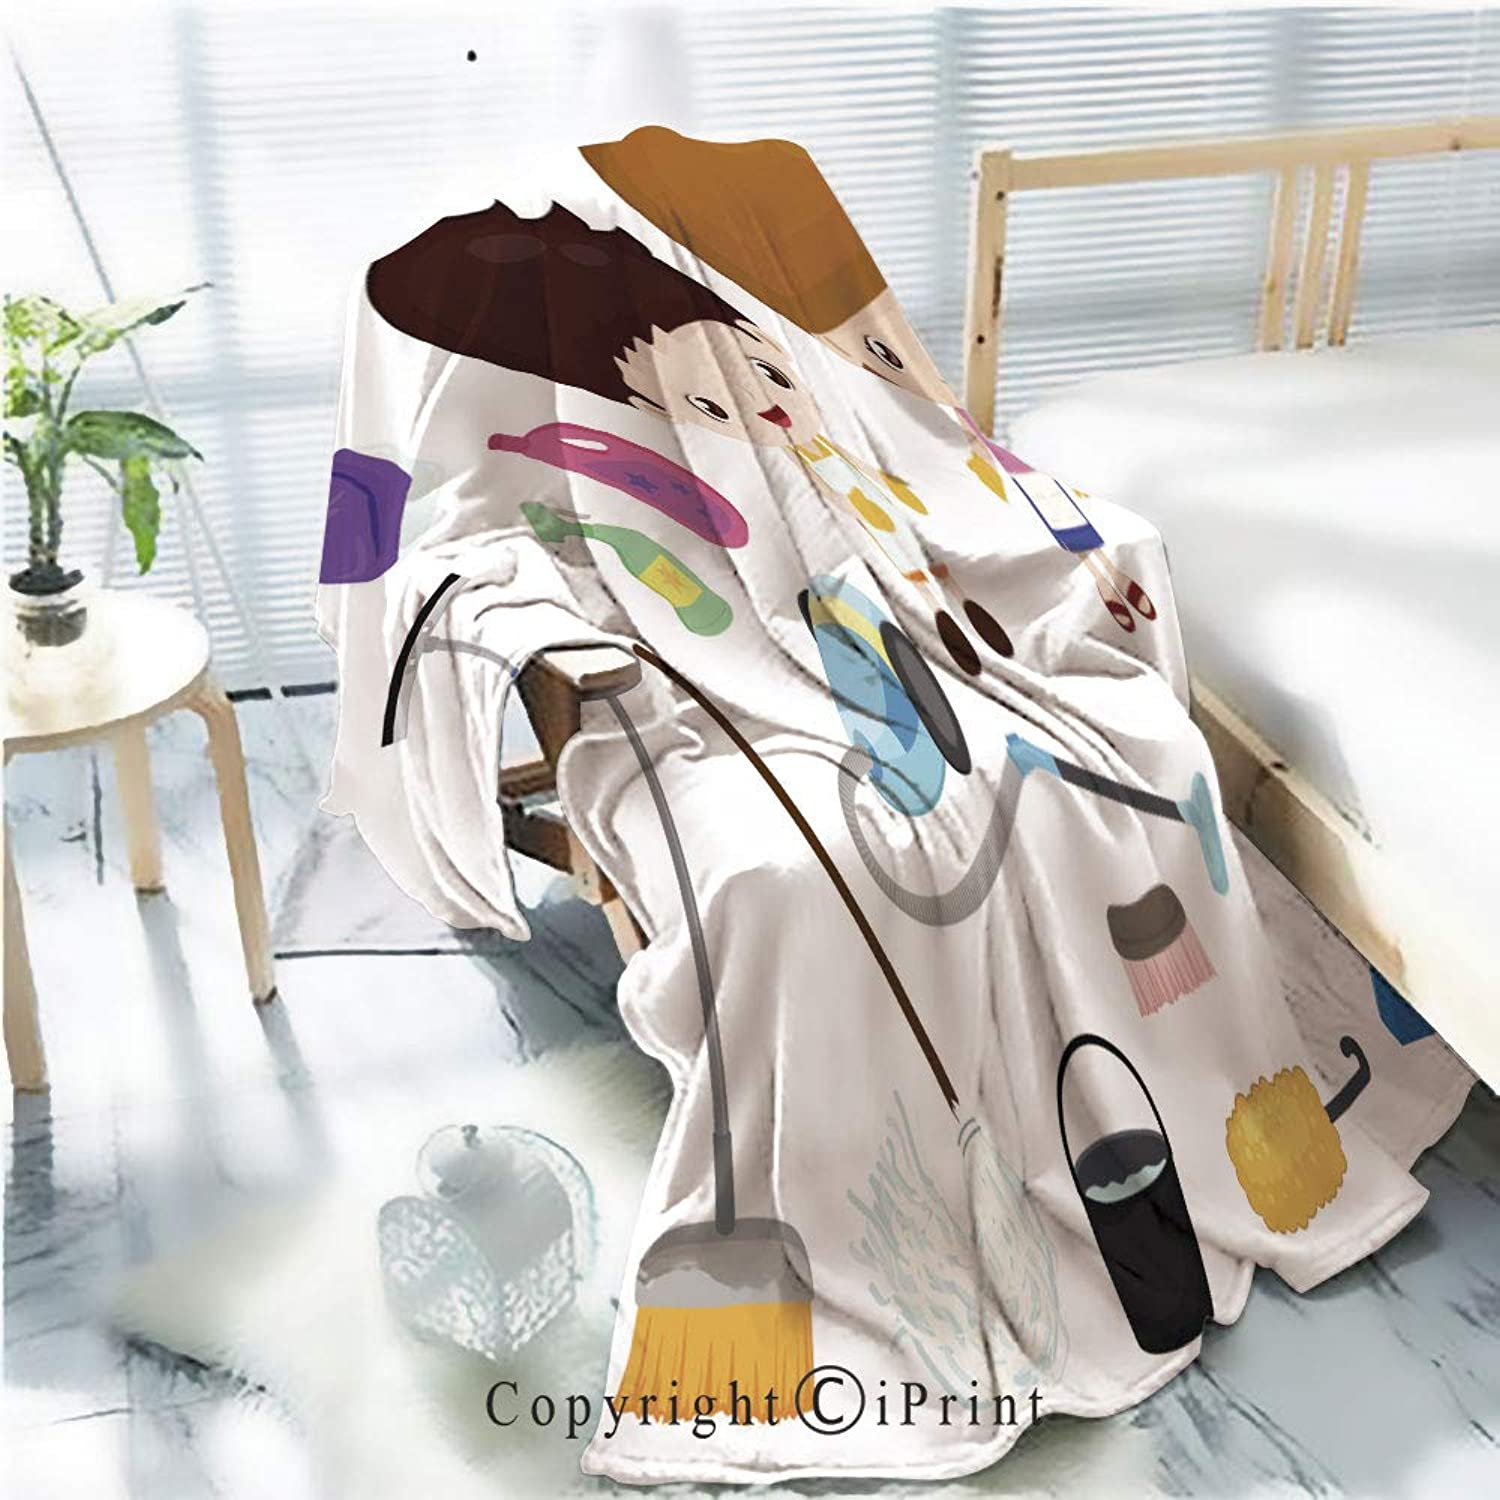 Flannel Printed Blanket for Warm Bedroom,Cleaning Tools Kids Set,Cracked Burning Earth Decorative,One Side Printing,W47.2 x H78.7